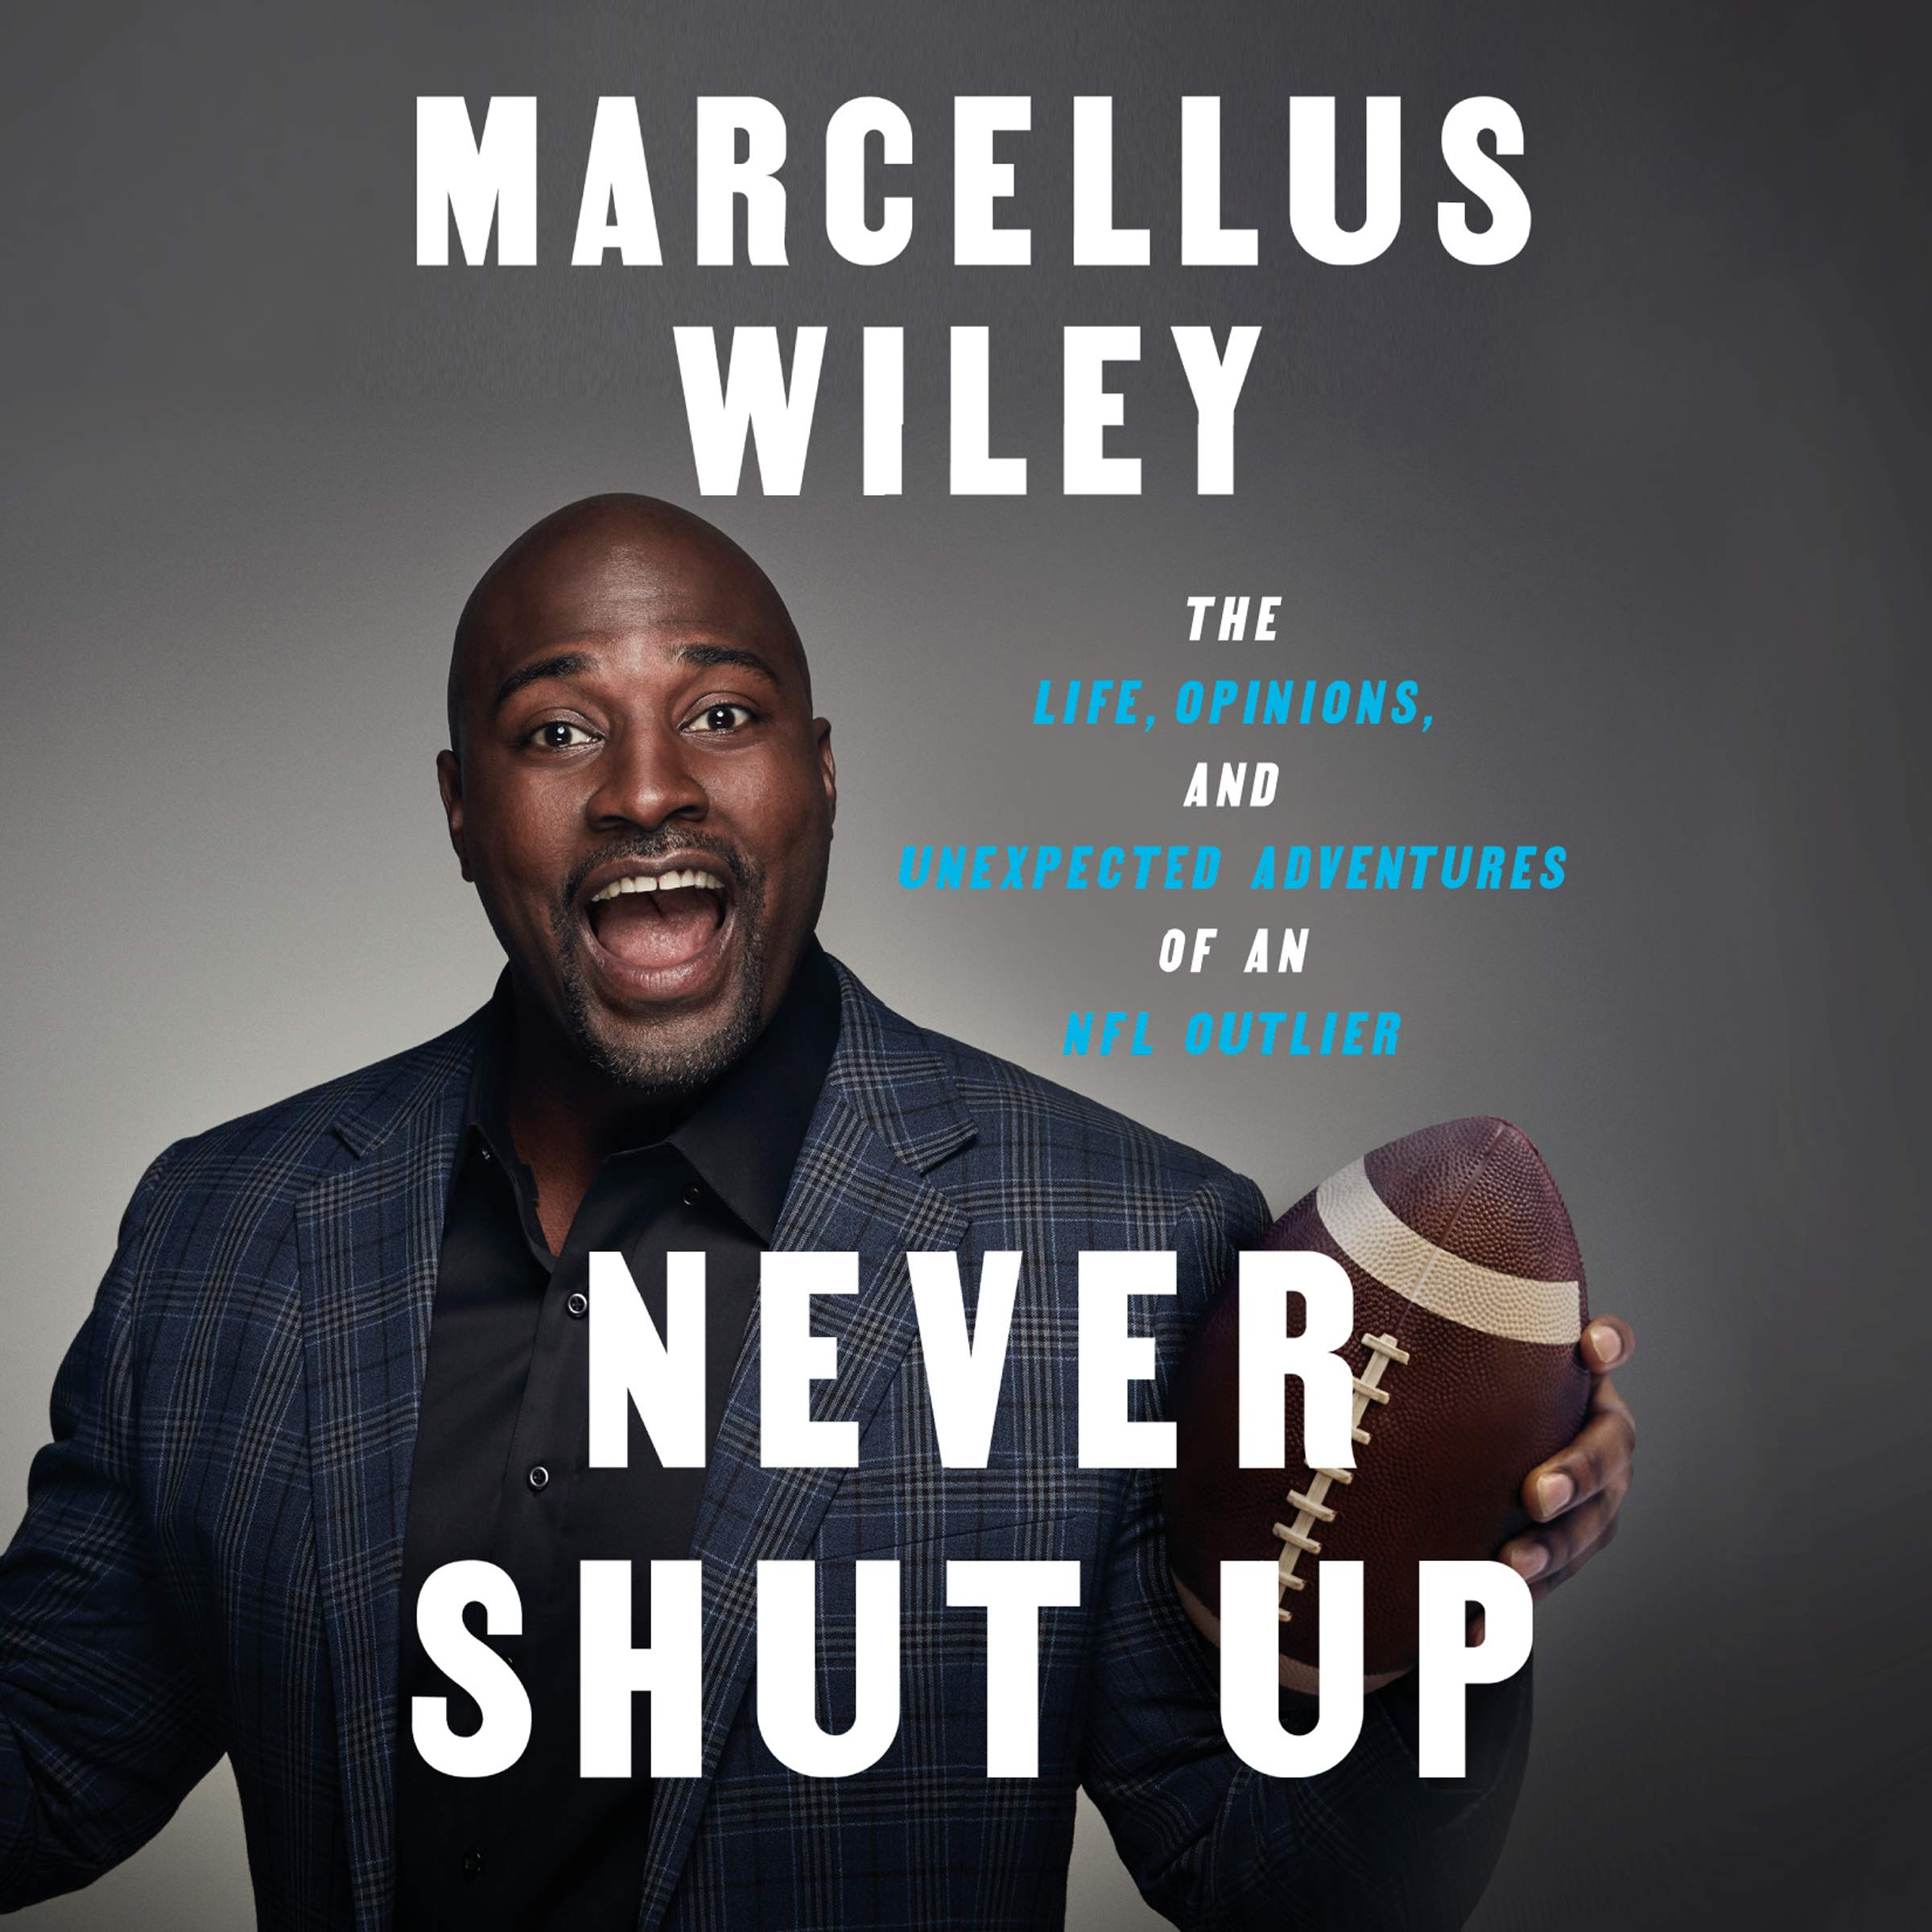 Never Shut Up: The Life, Opinions, and Unexpected Adventures of an NFL Outlier